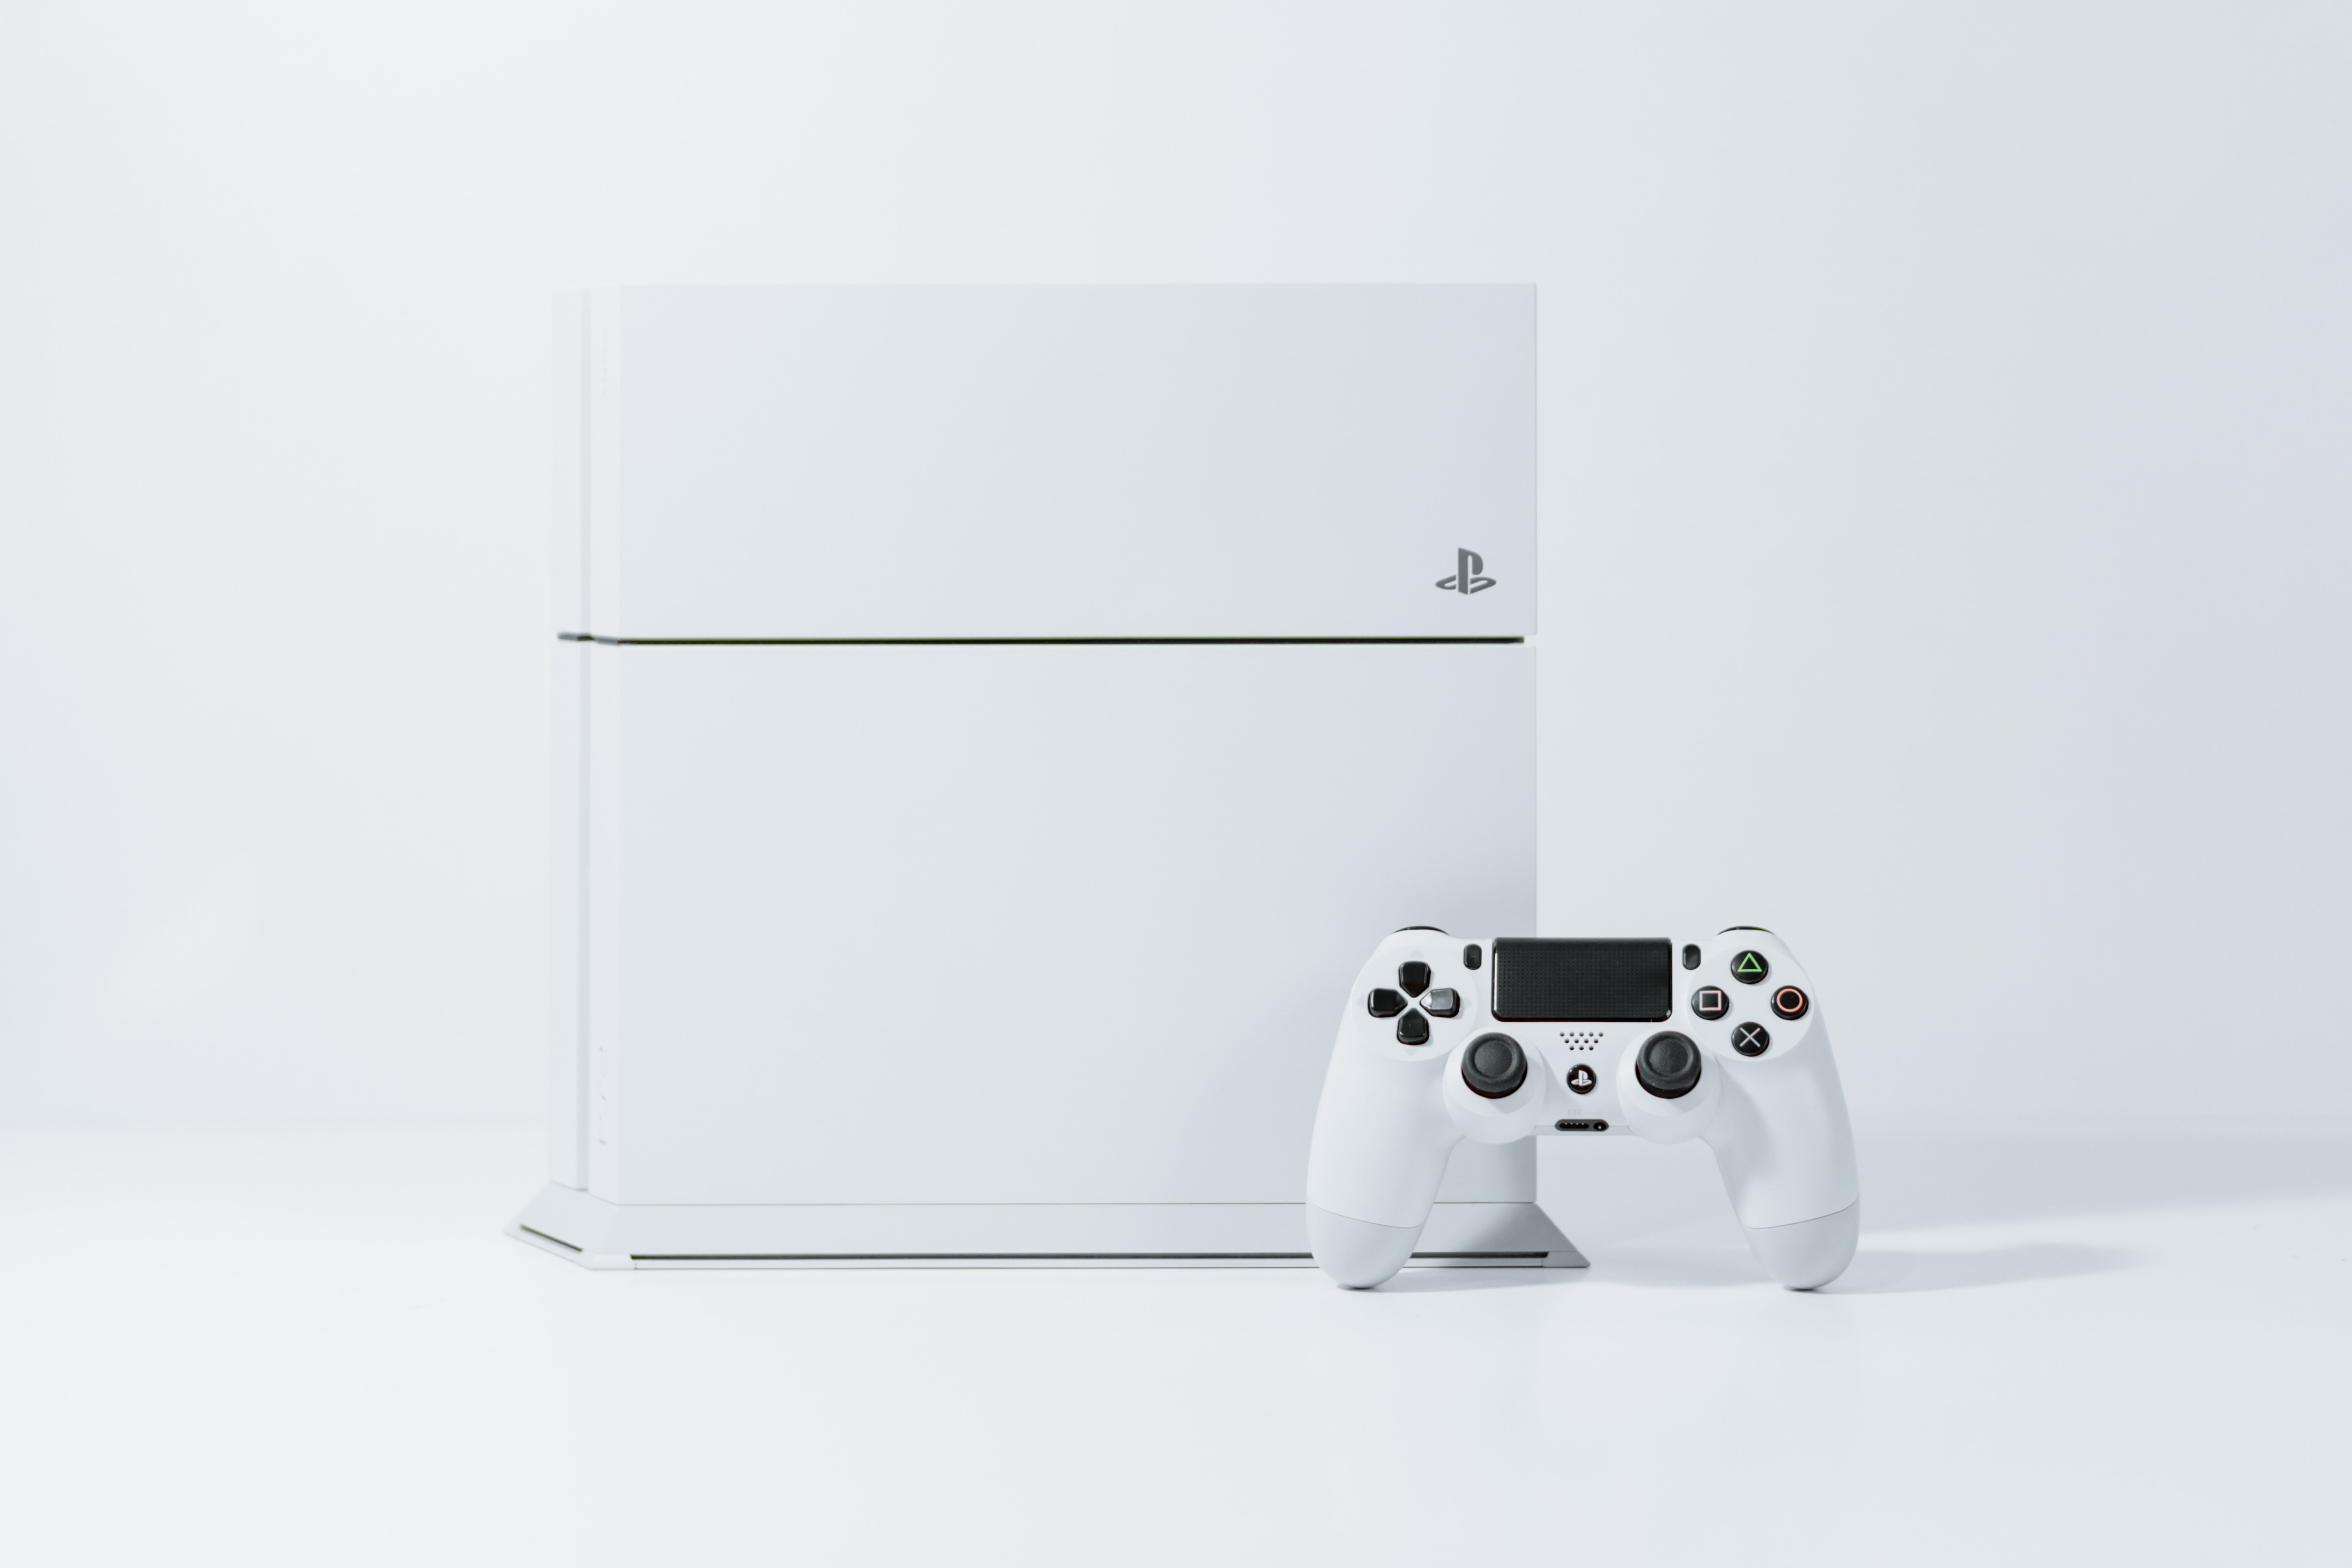 A close up shot of a white PS4 gaming system